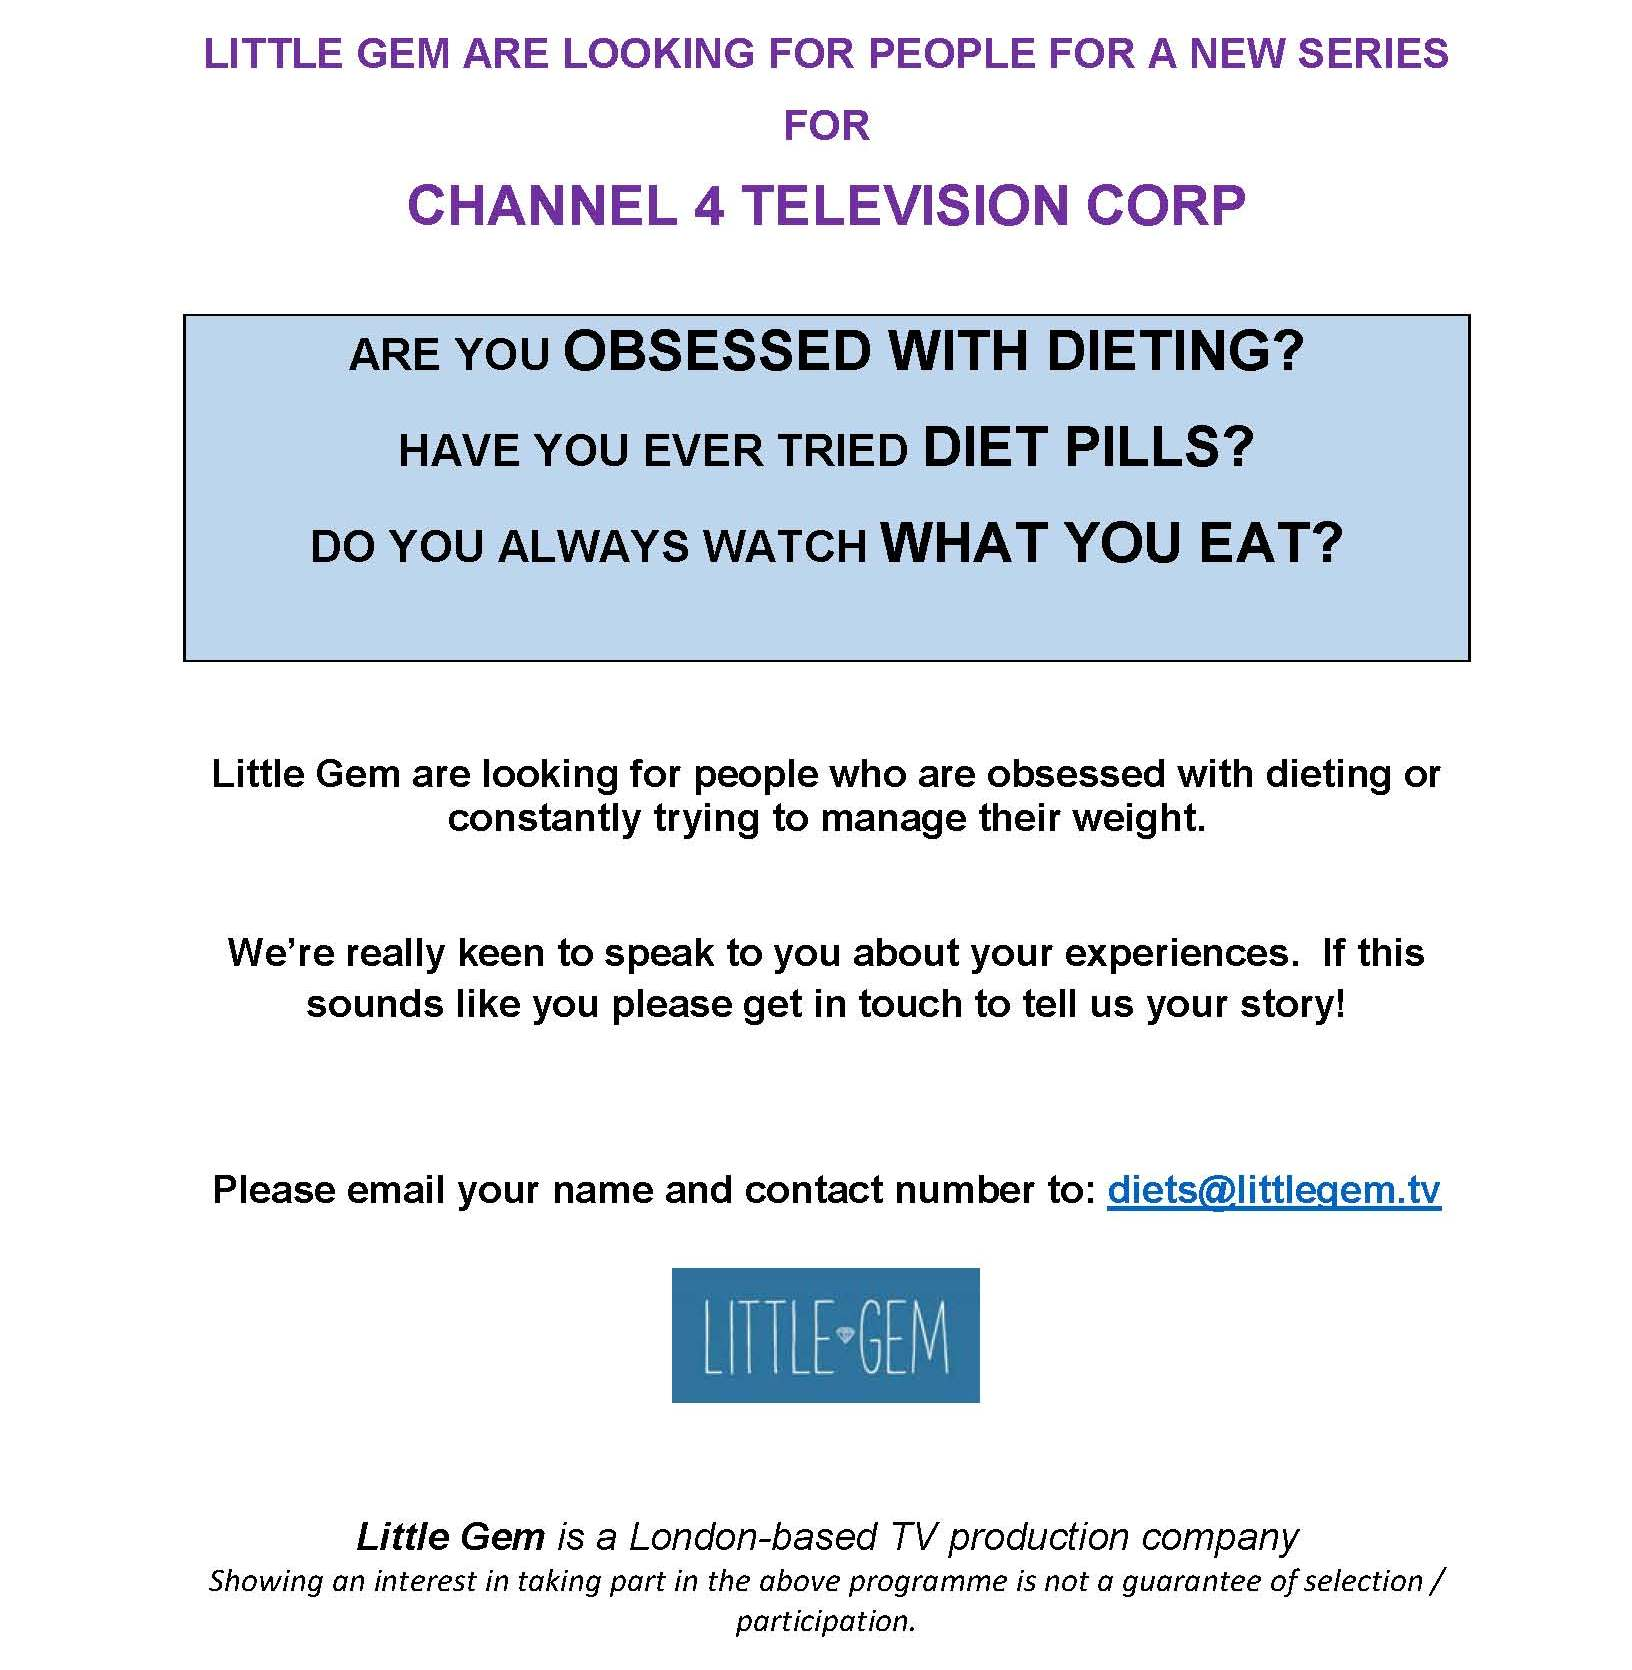 New Tv Show Looking For People Obsessed With Dieting